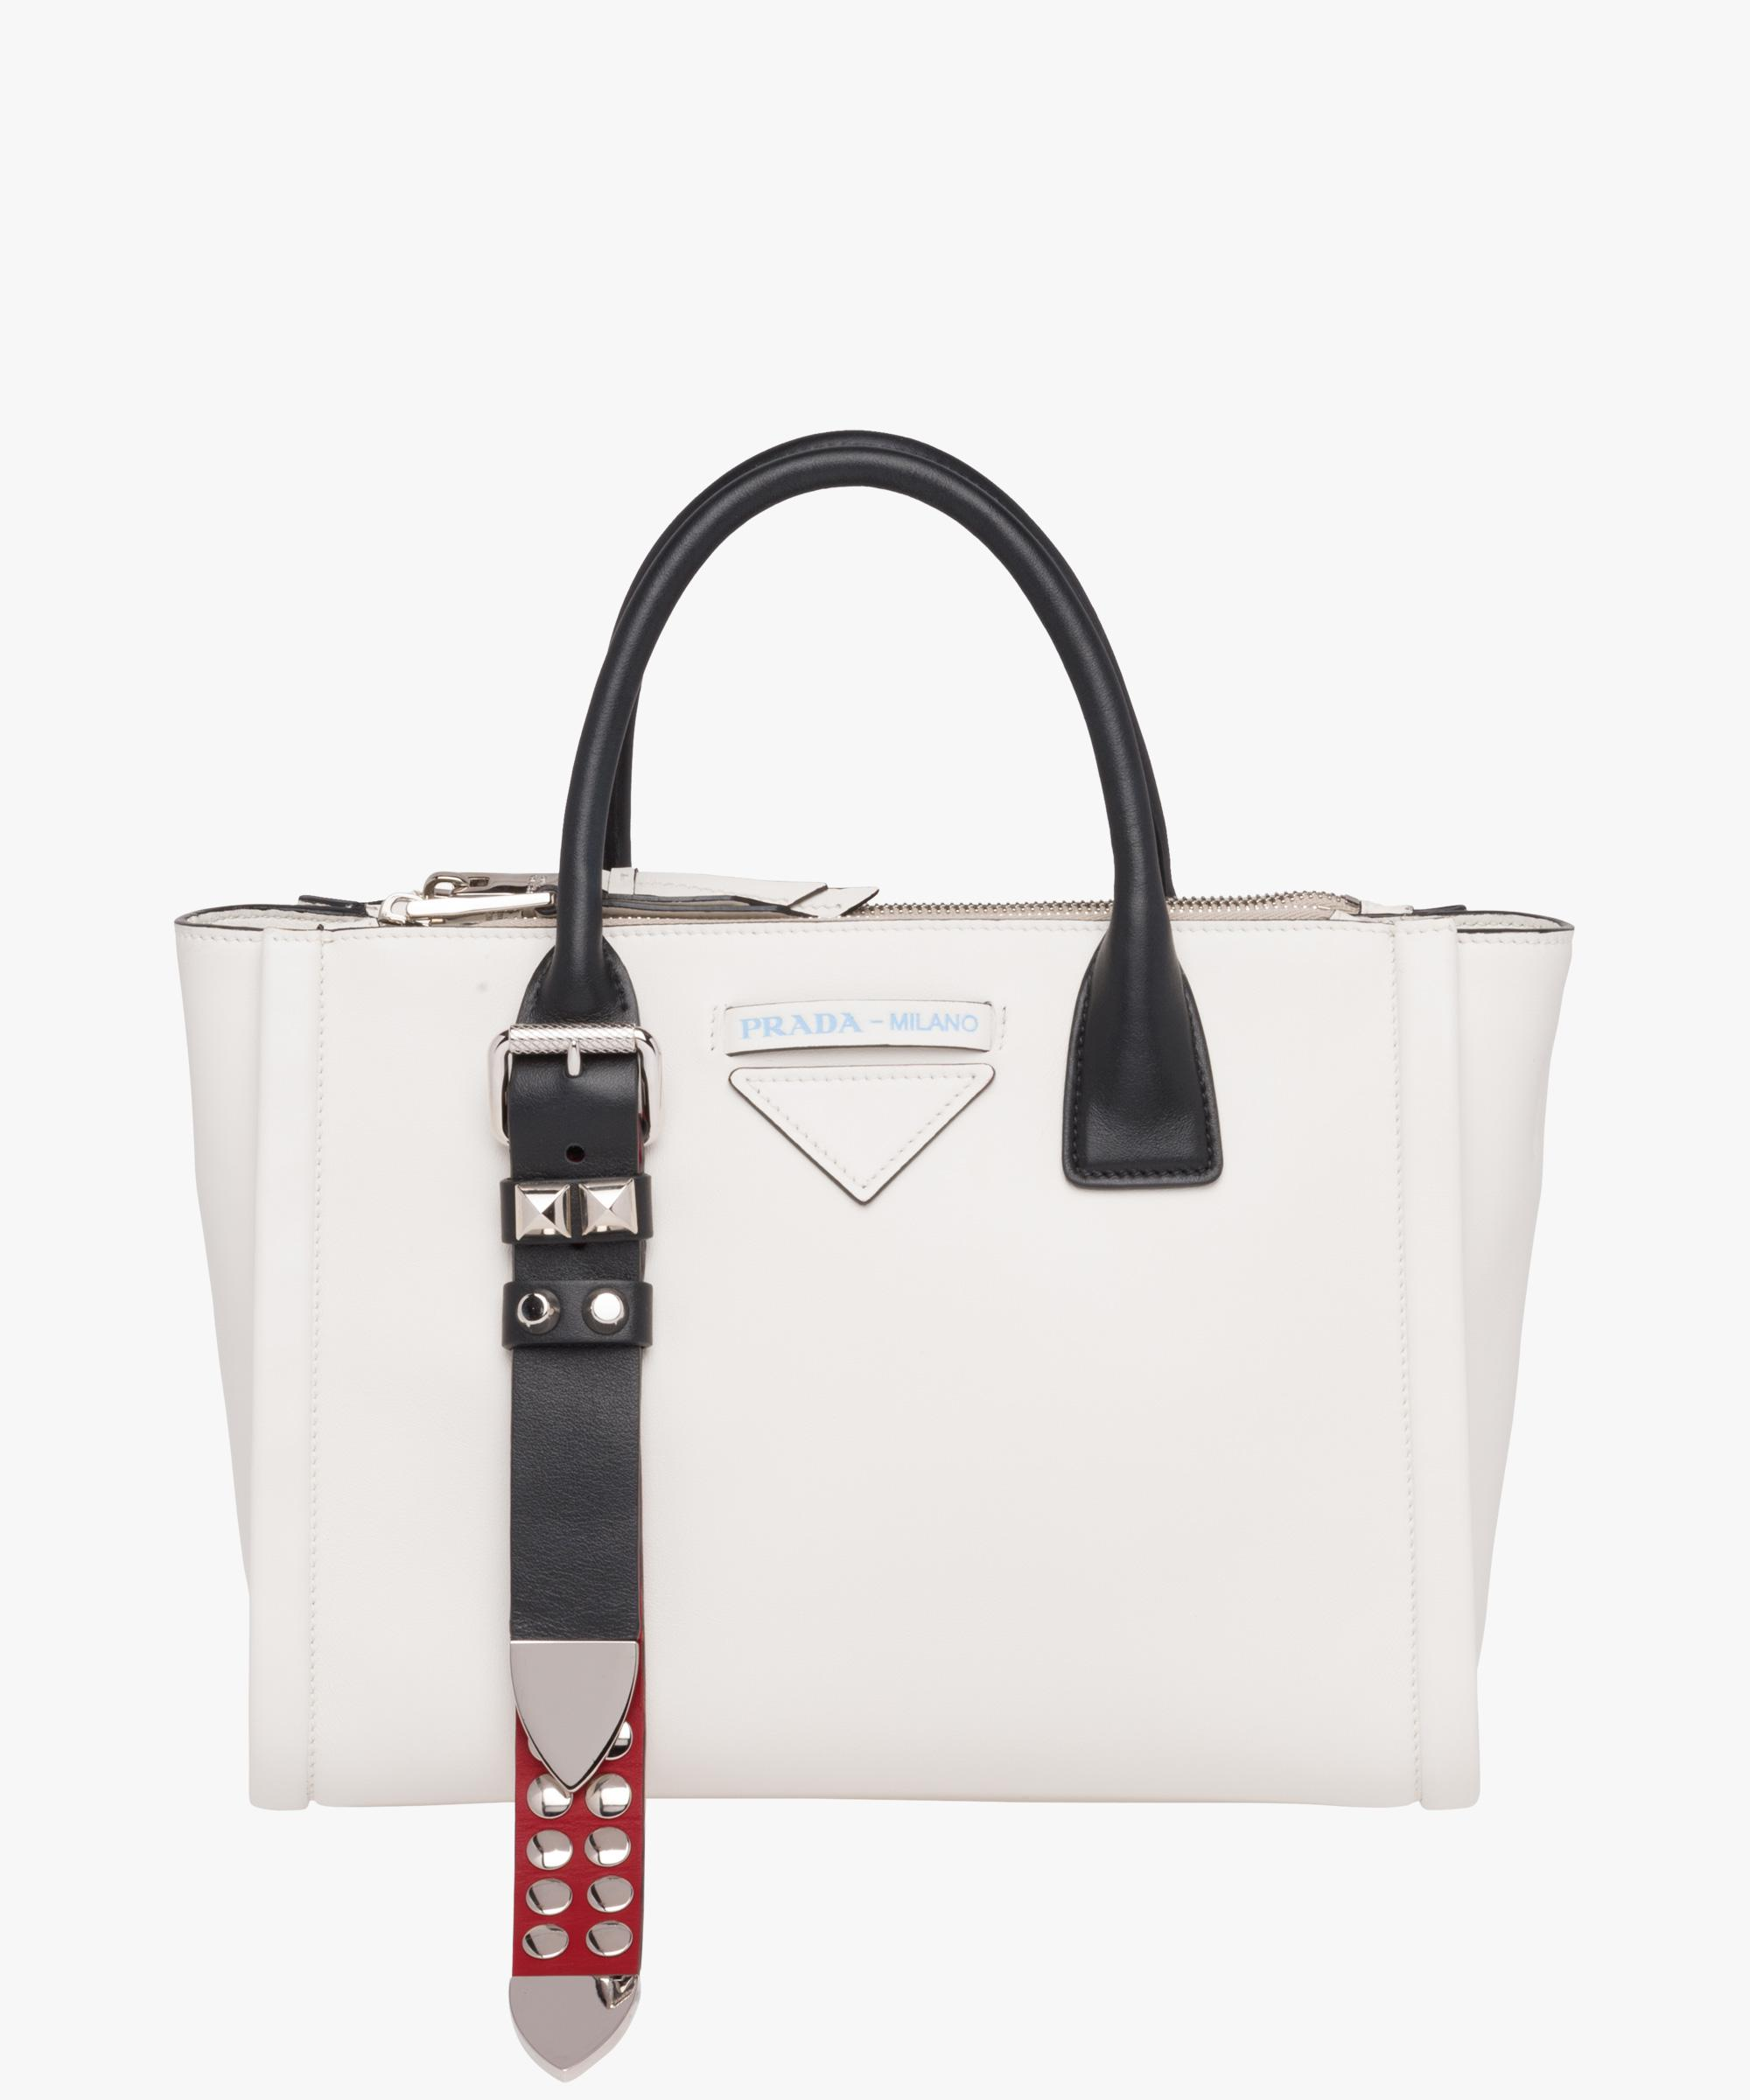 ... purchase gallery. previously sold at prada womens leather handbags  665ef fe364 95dbb84af0360